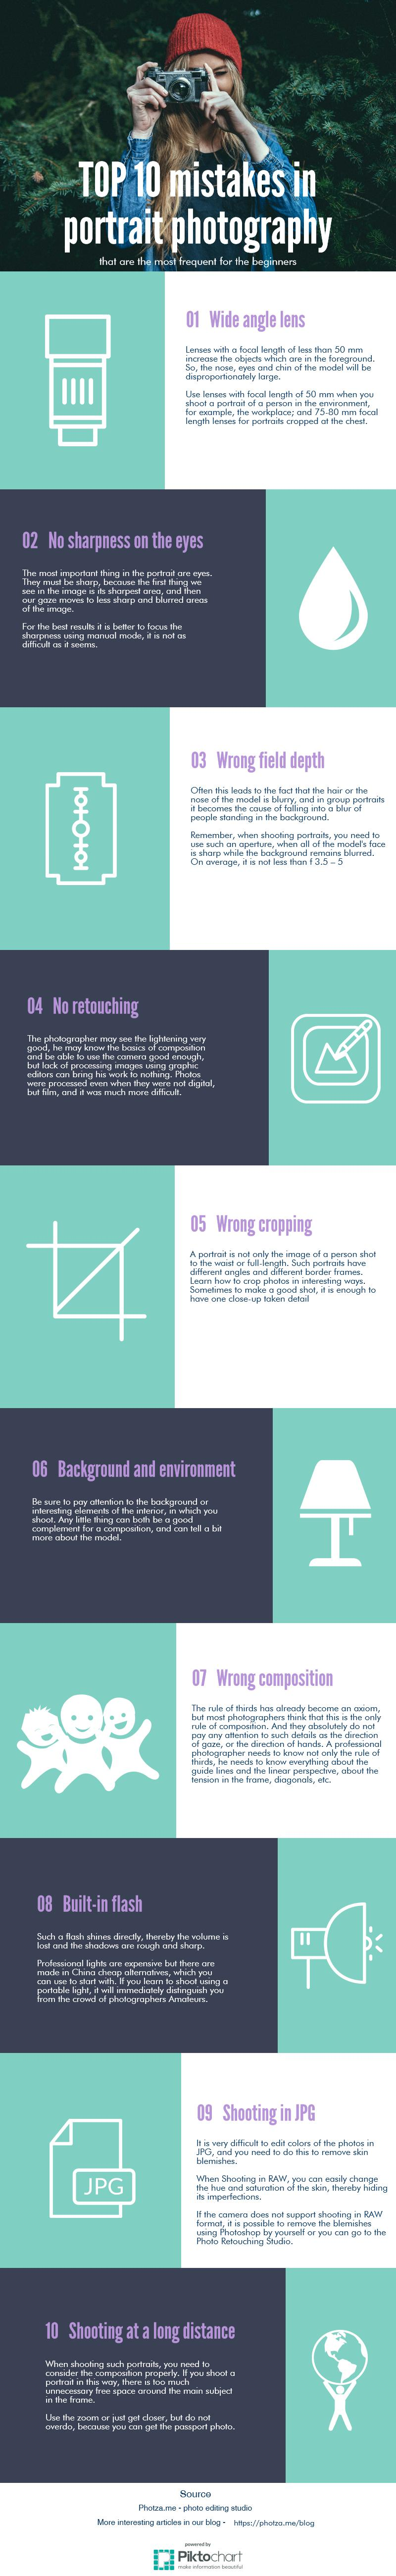 top-10-mistakes-in-portrait-photo-infographic-plaza